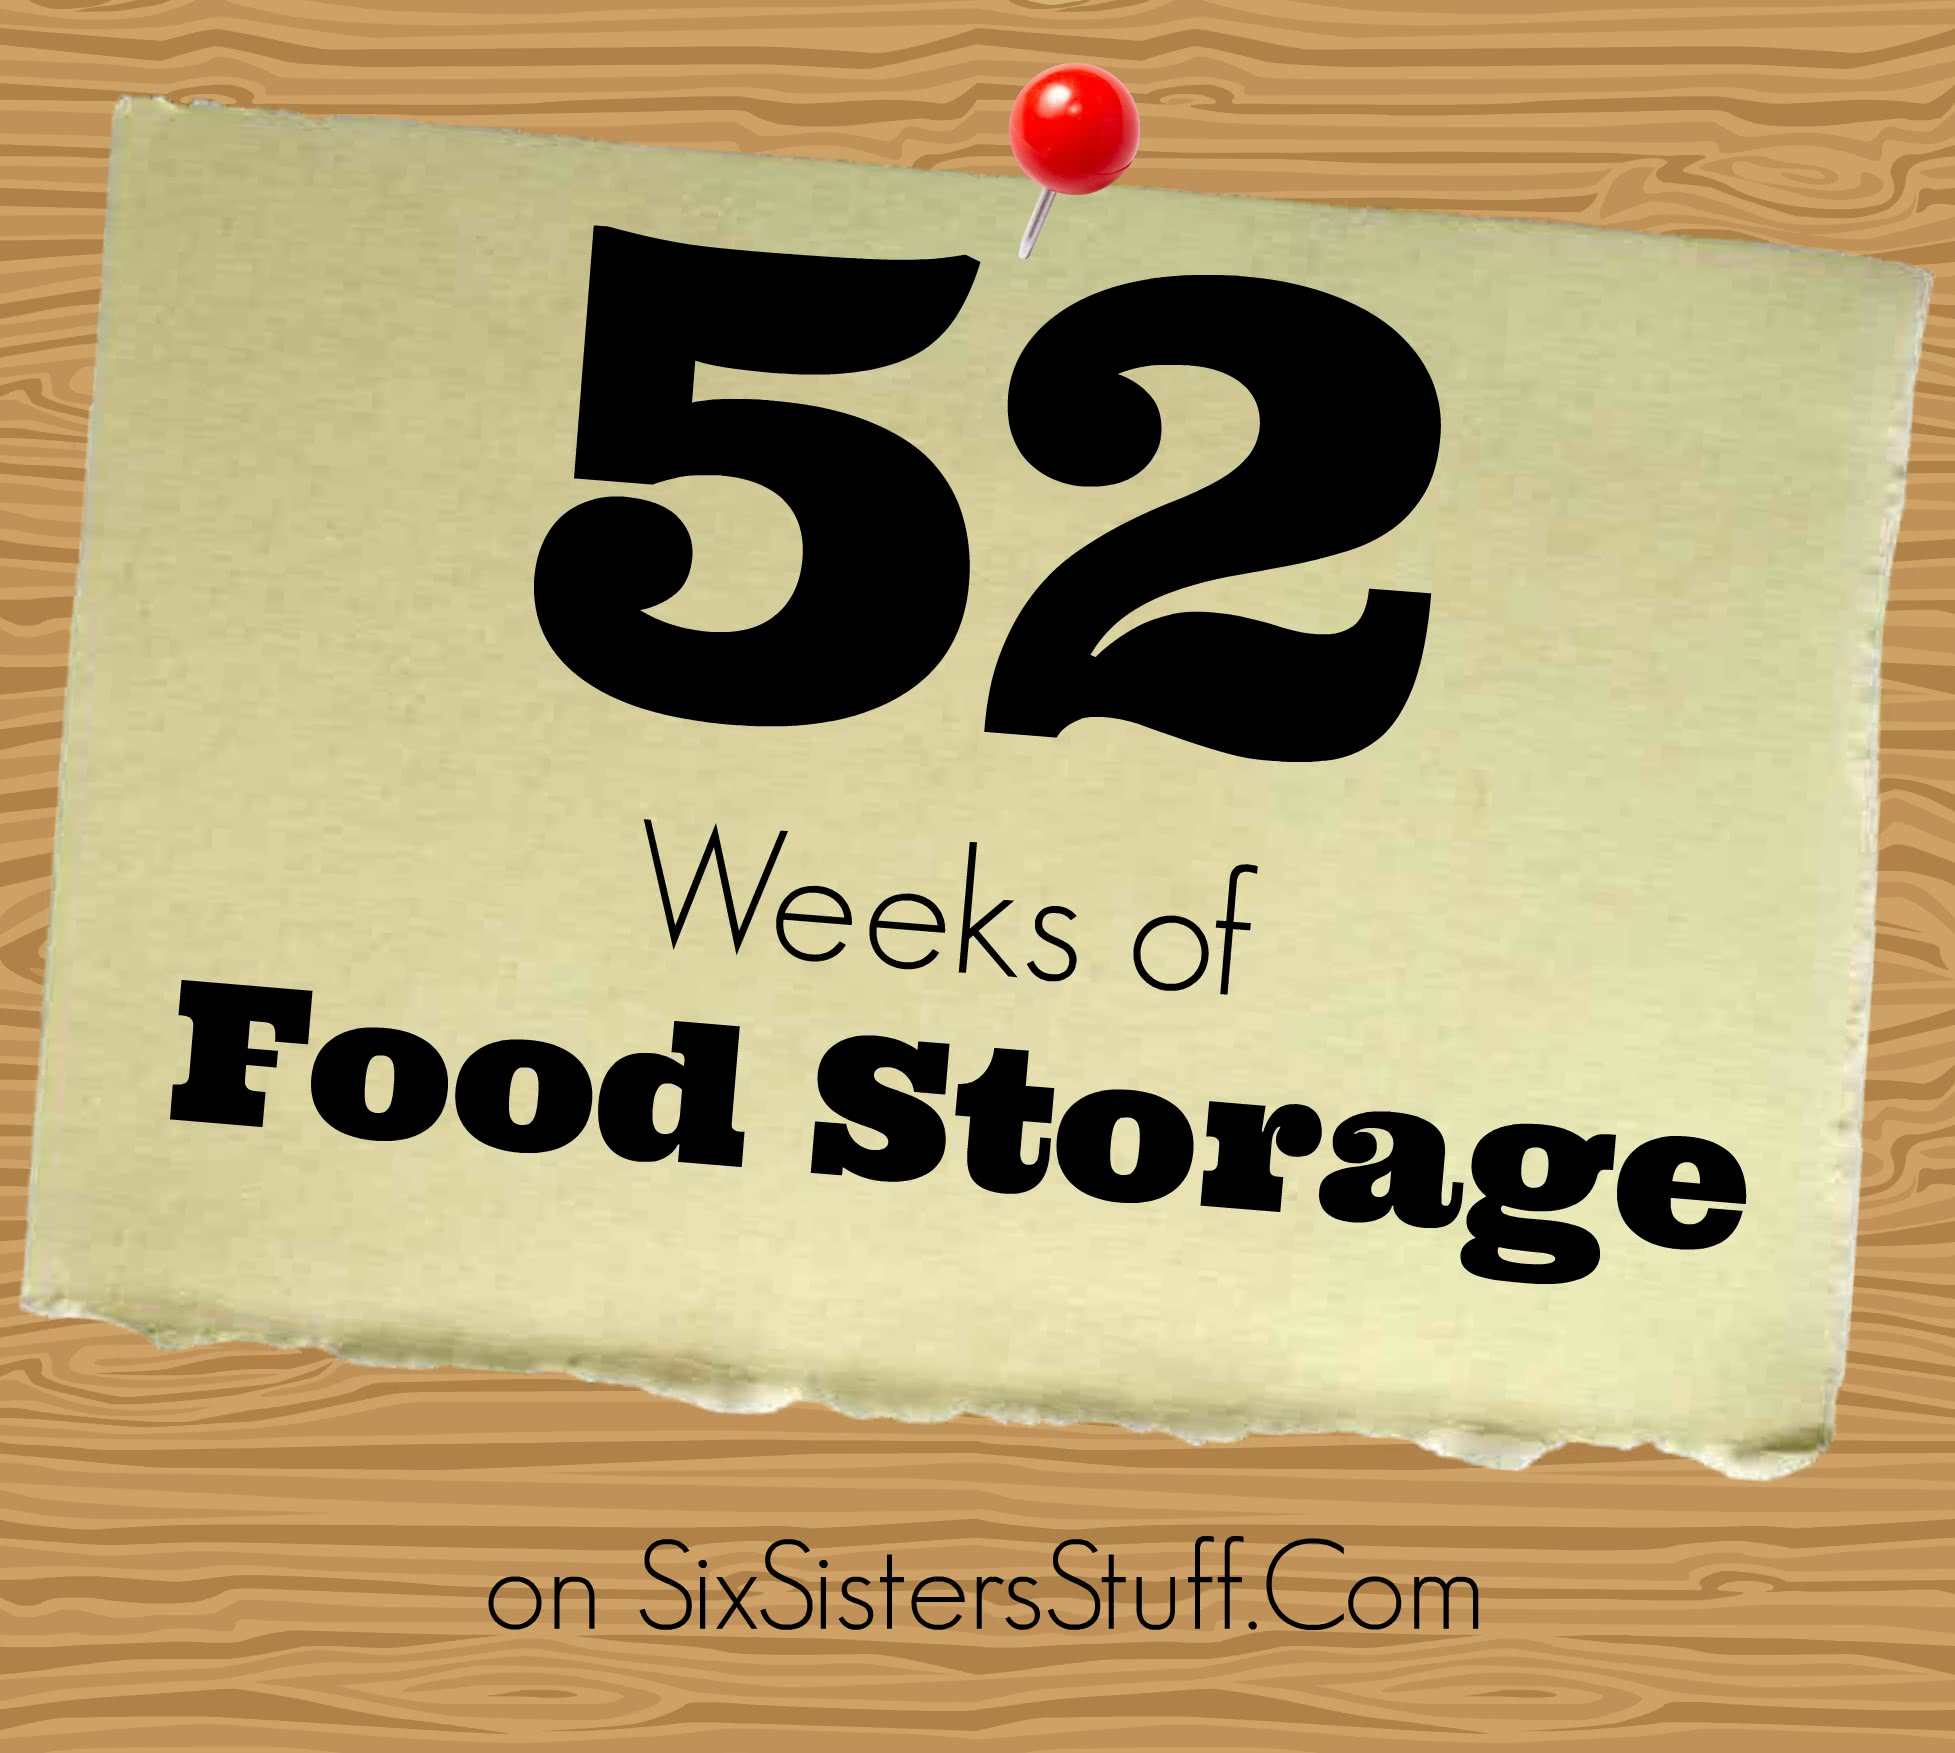 52 Weeks of Food Storage